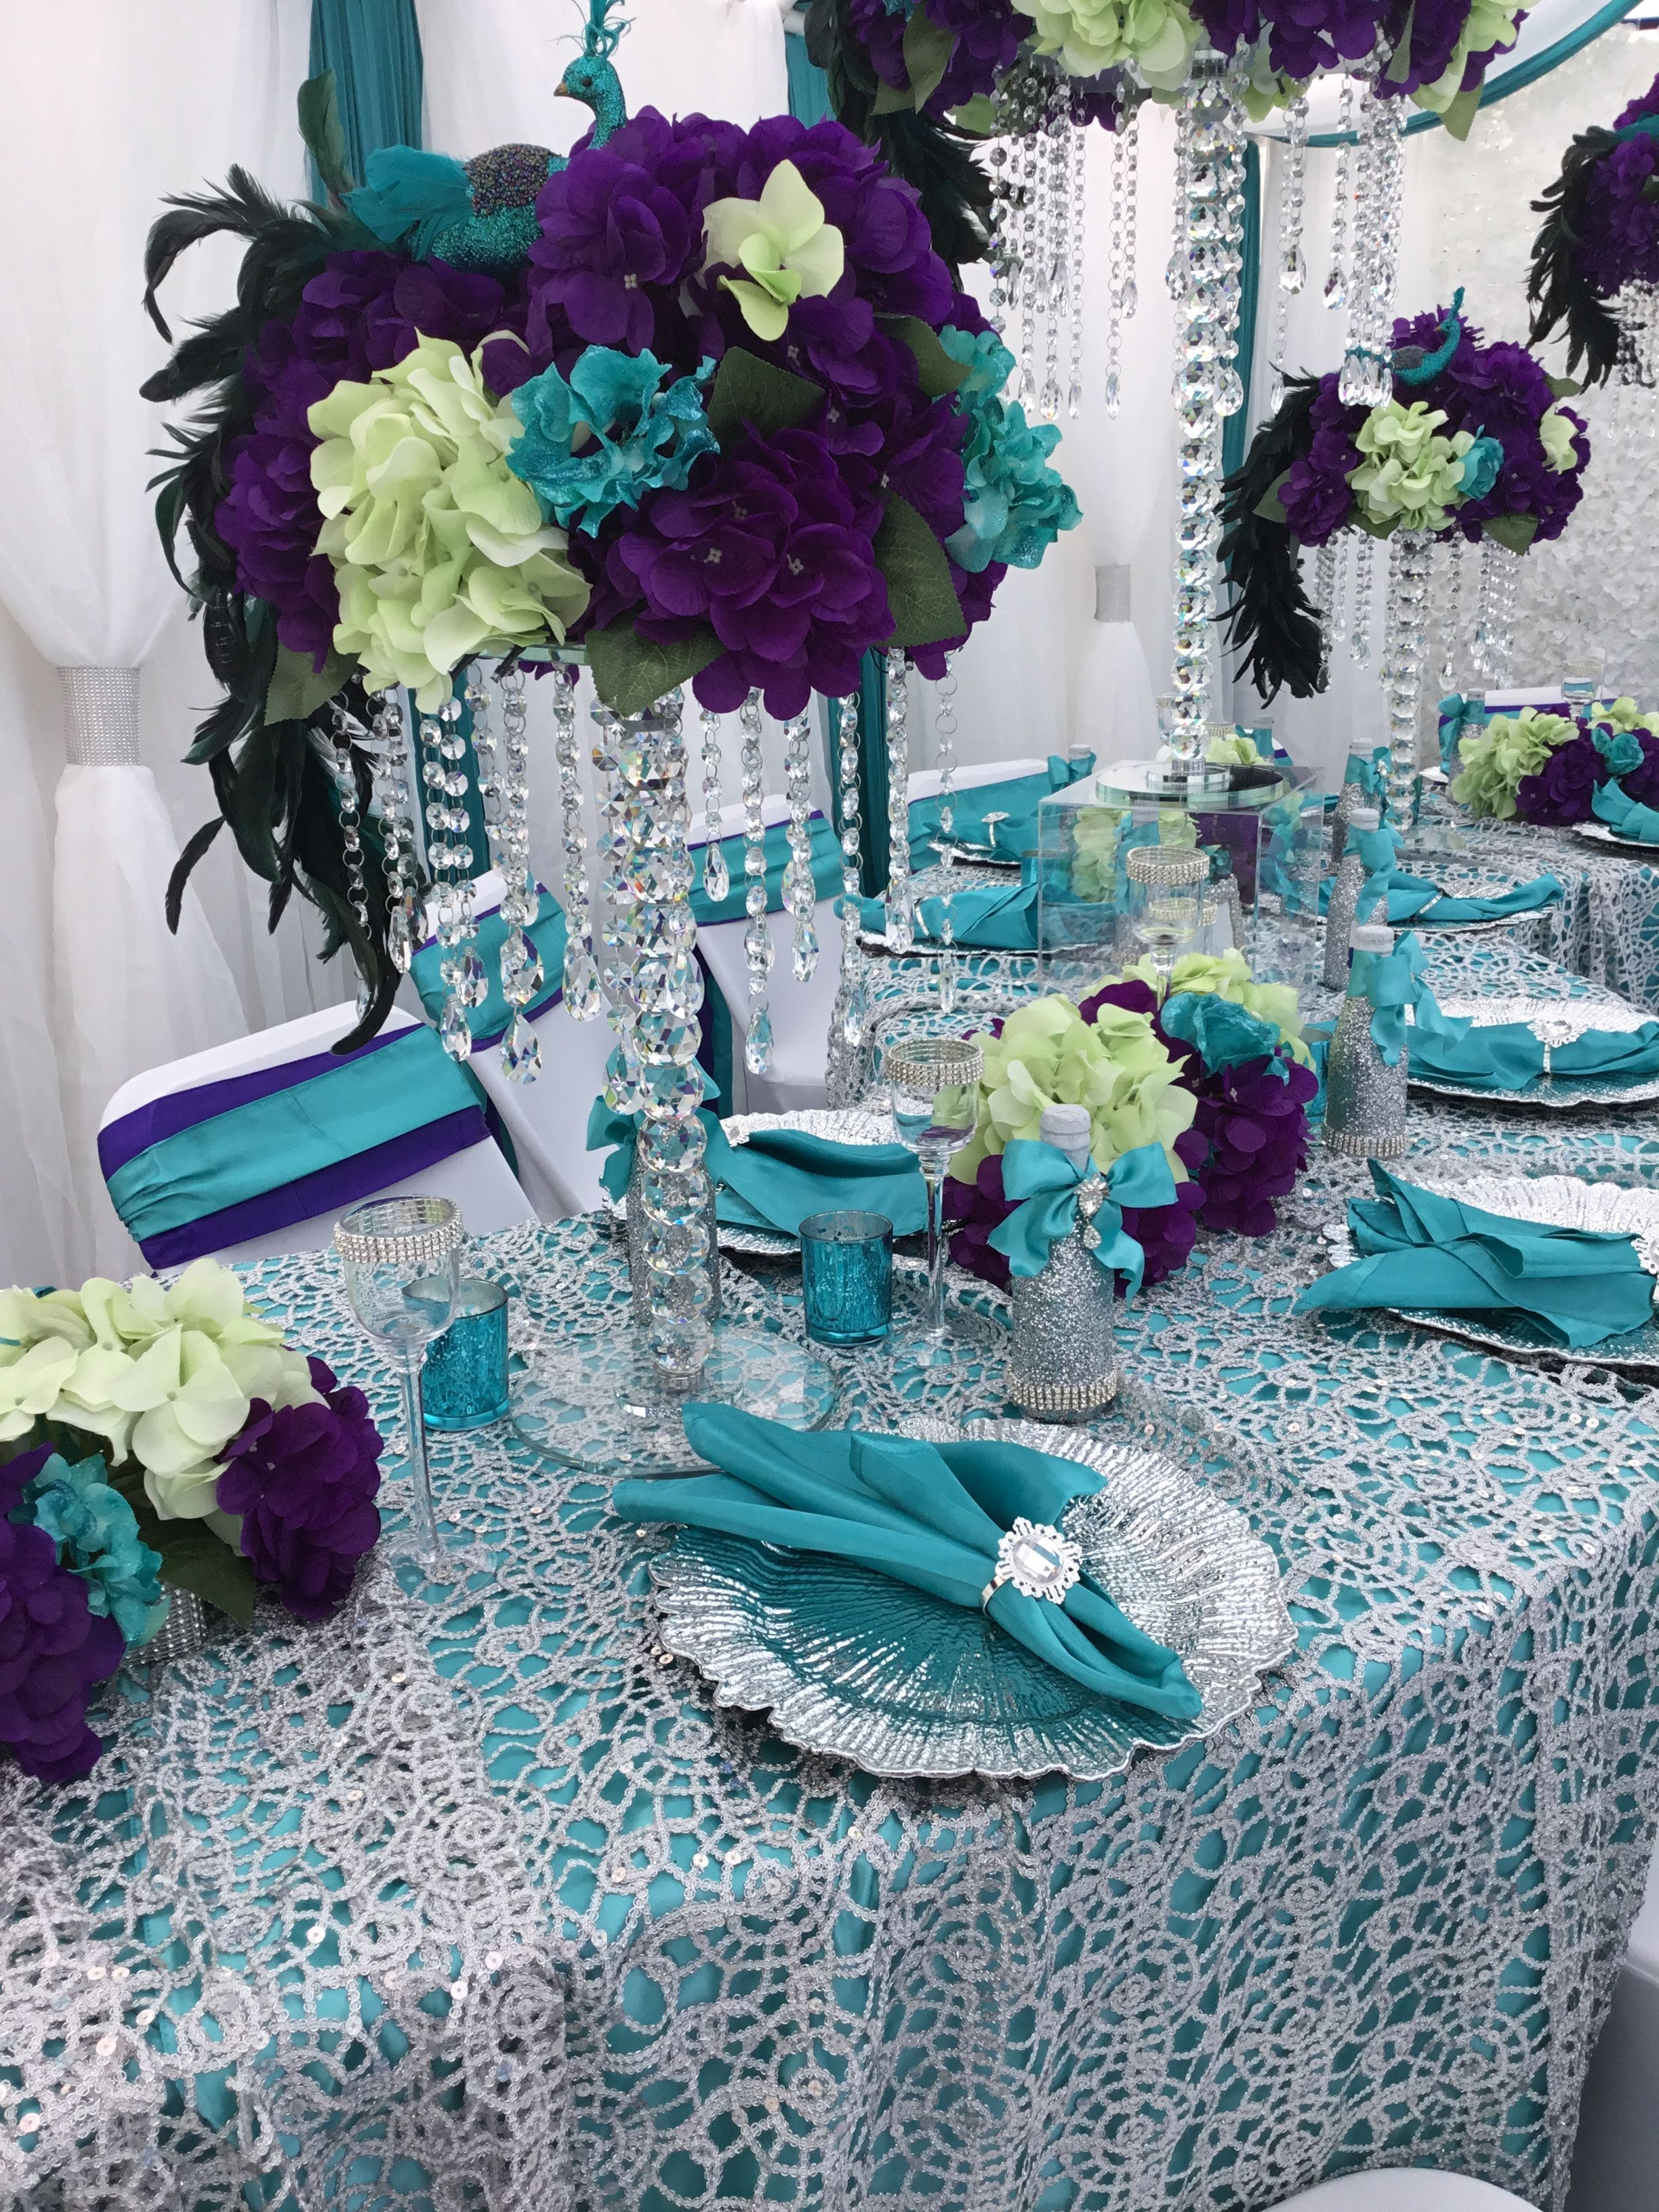 Peacock Wedding Theme Ideas And Supplies Kids Peacock Theme Centerpieces In 2019 Pe Peacock Wedding Theme Indian Wedding Theme Peacock Wedding Centerpieces